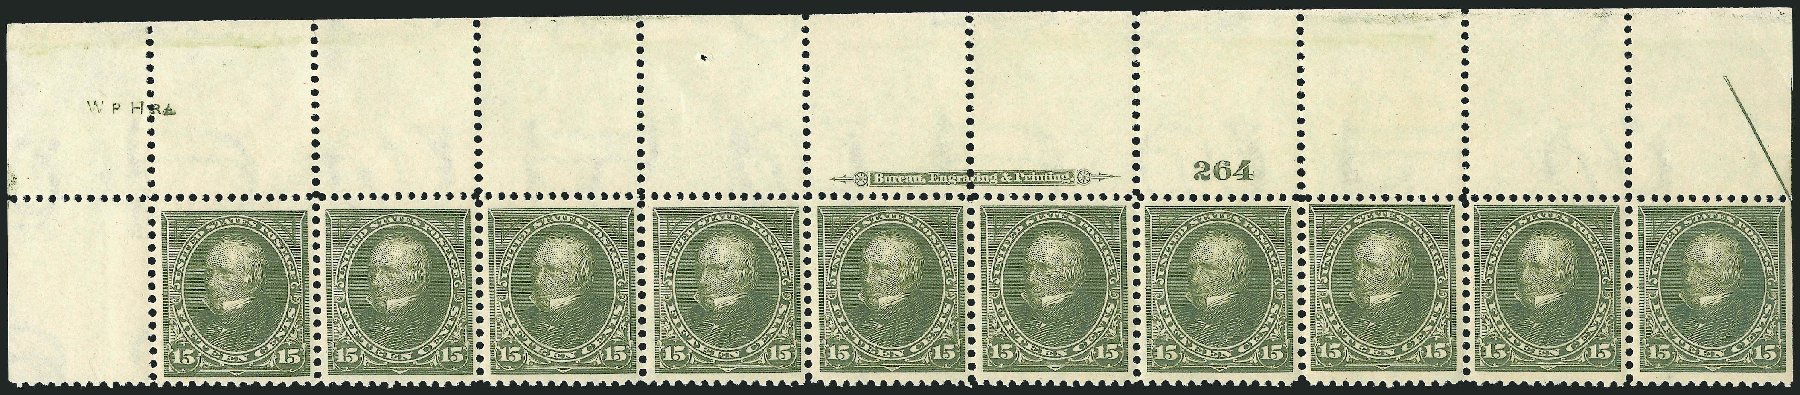 Prices of US Stamps Scott Cat. 284 - 1898 15c Clay. Robert Siegel Auction Galleries, Feb 2015, Sale 1092, Lot 1228